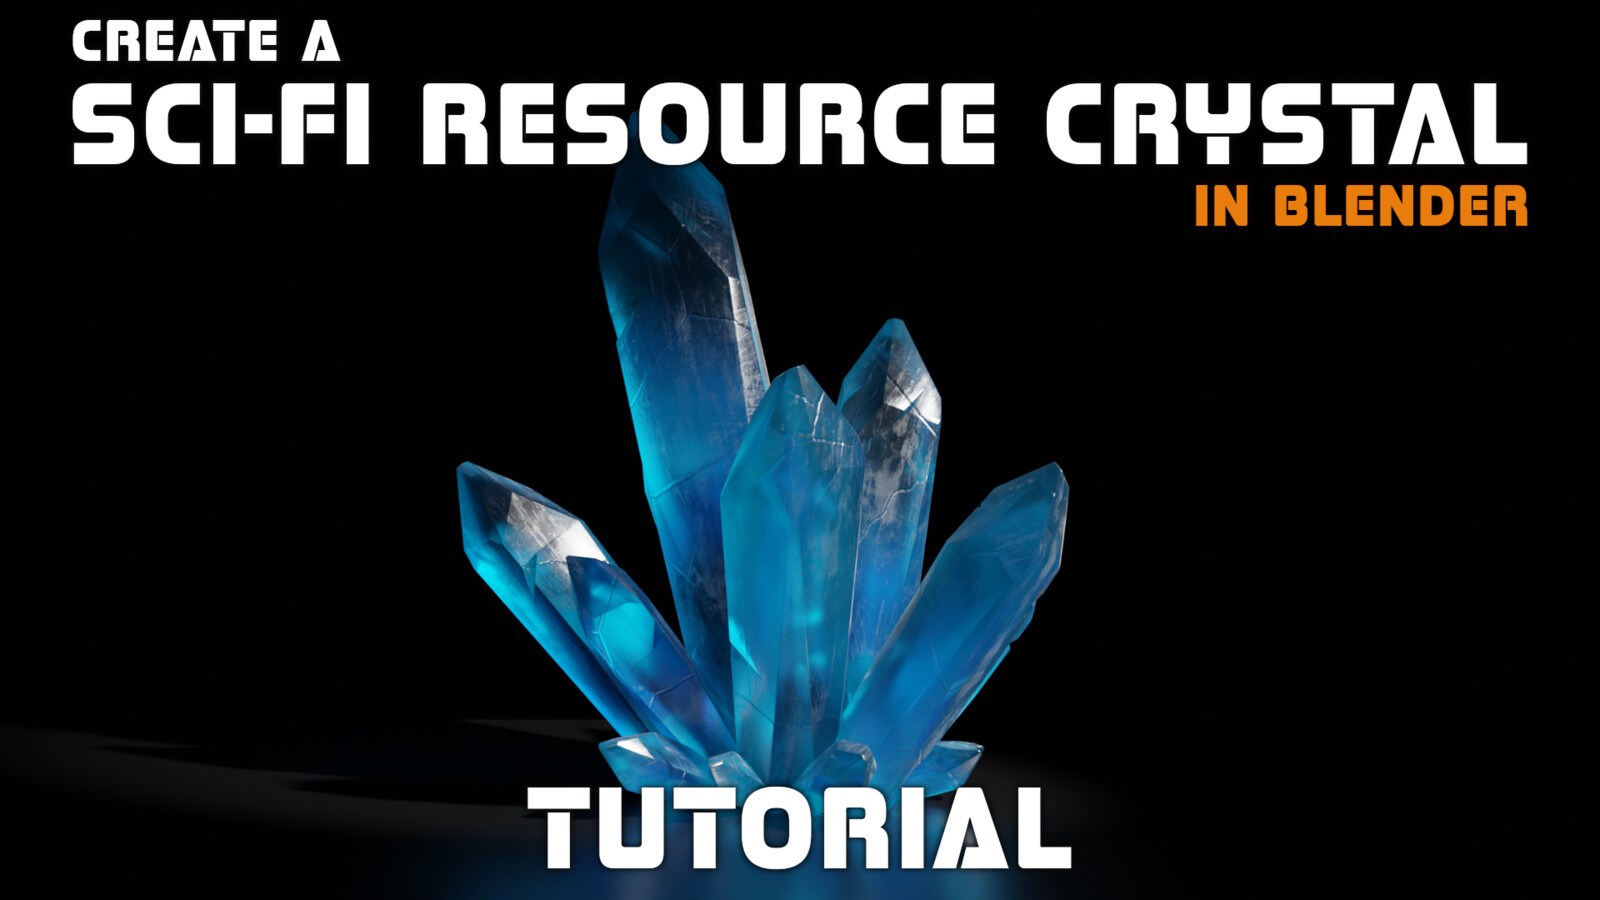 A tutorial on creating the crystals in this scene can be found her: https://artofkarlb.com/projects/gJZ5NE